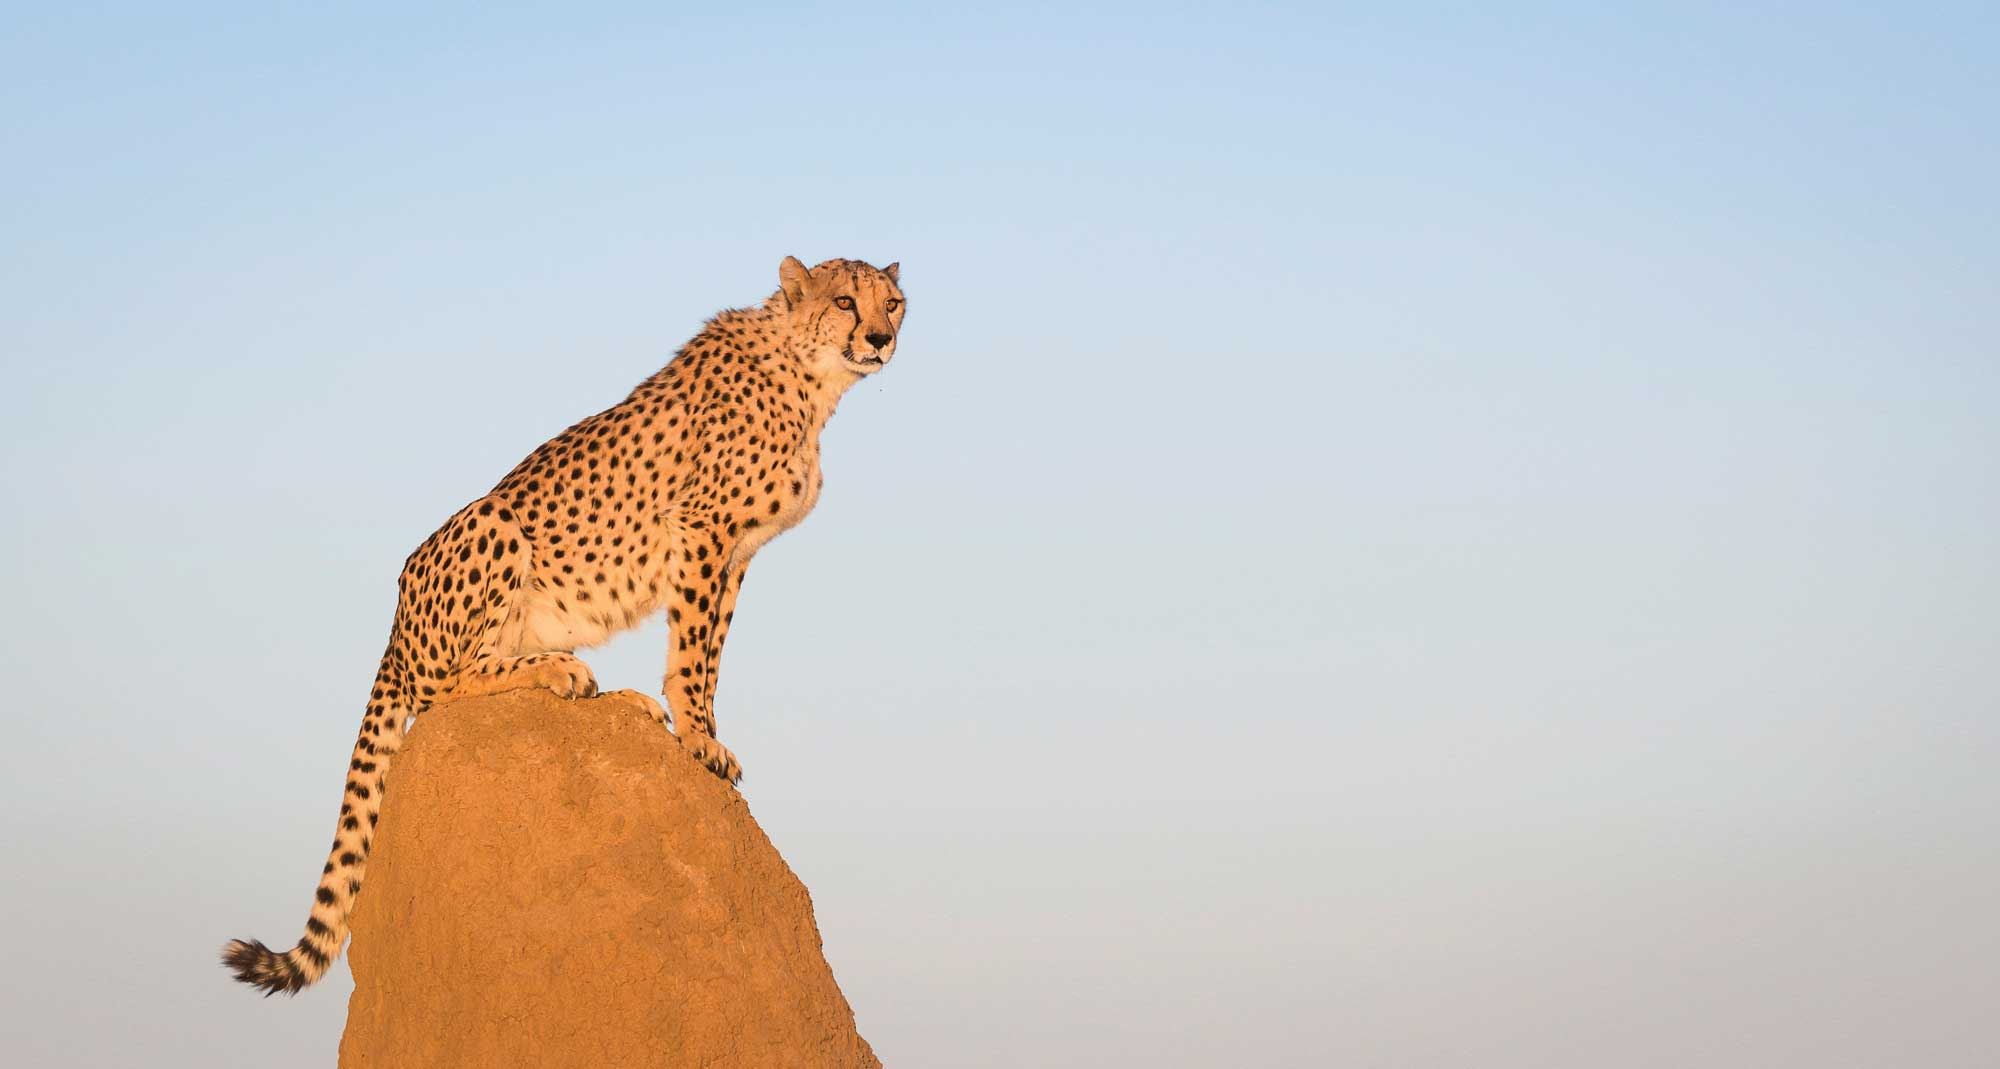 Mulder,-now-12-years-old-remains-in-captivity-as-an-AfriCat-ambassador